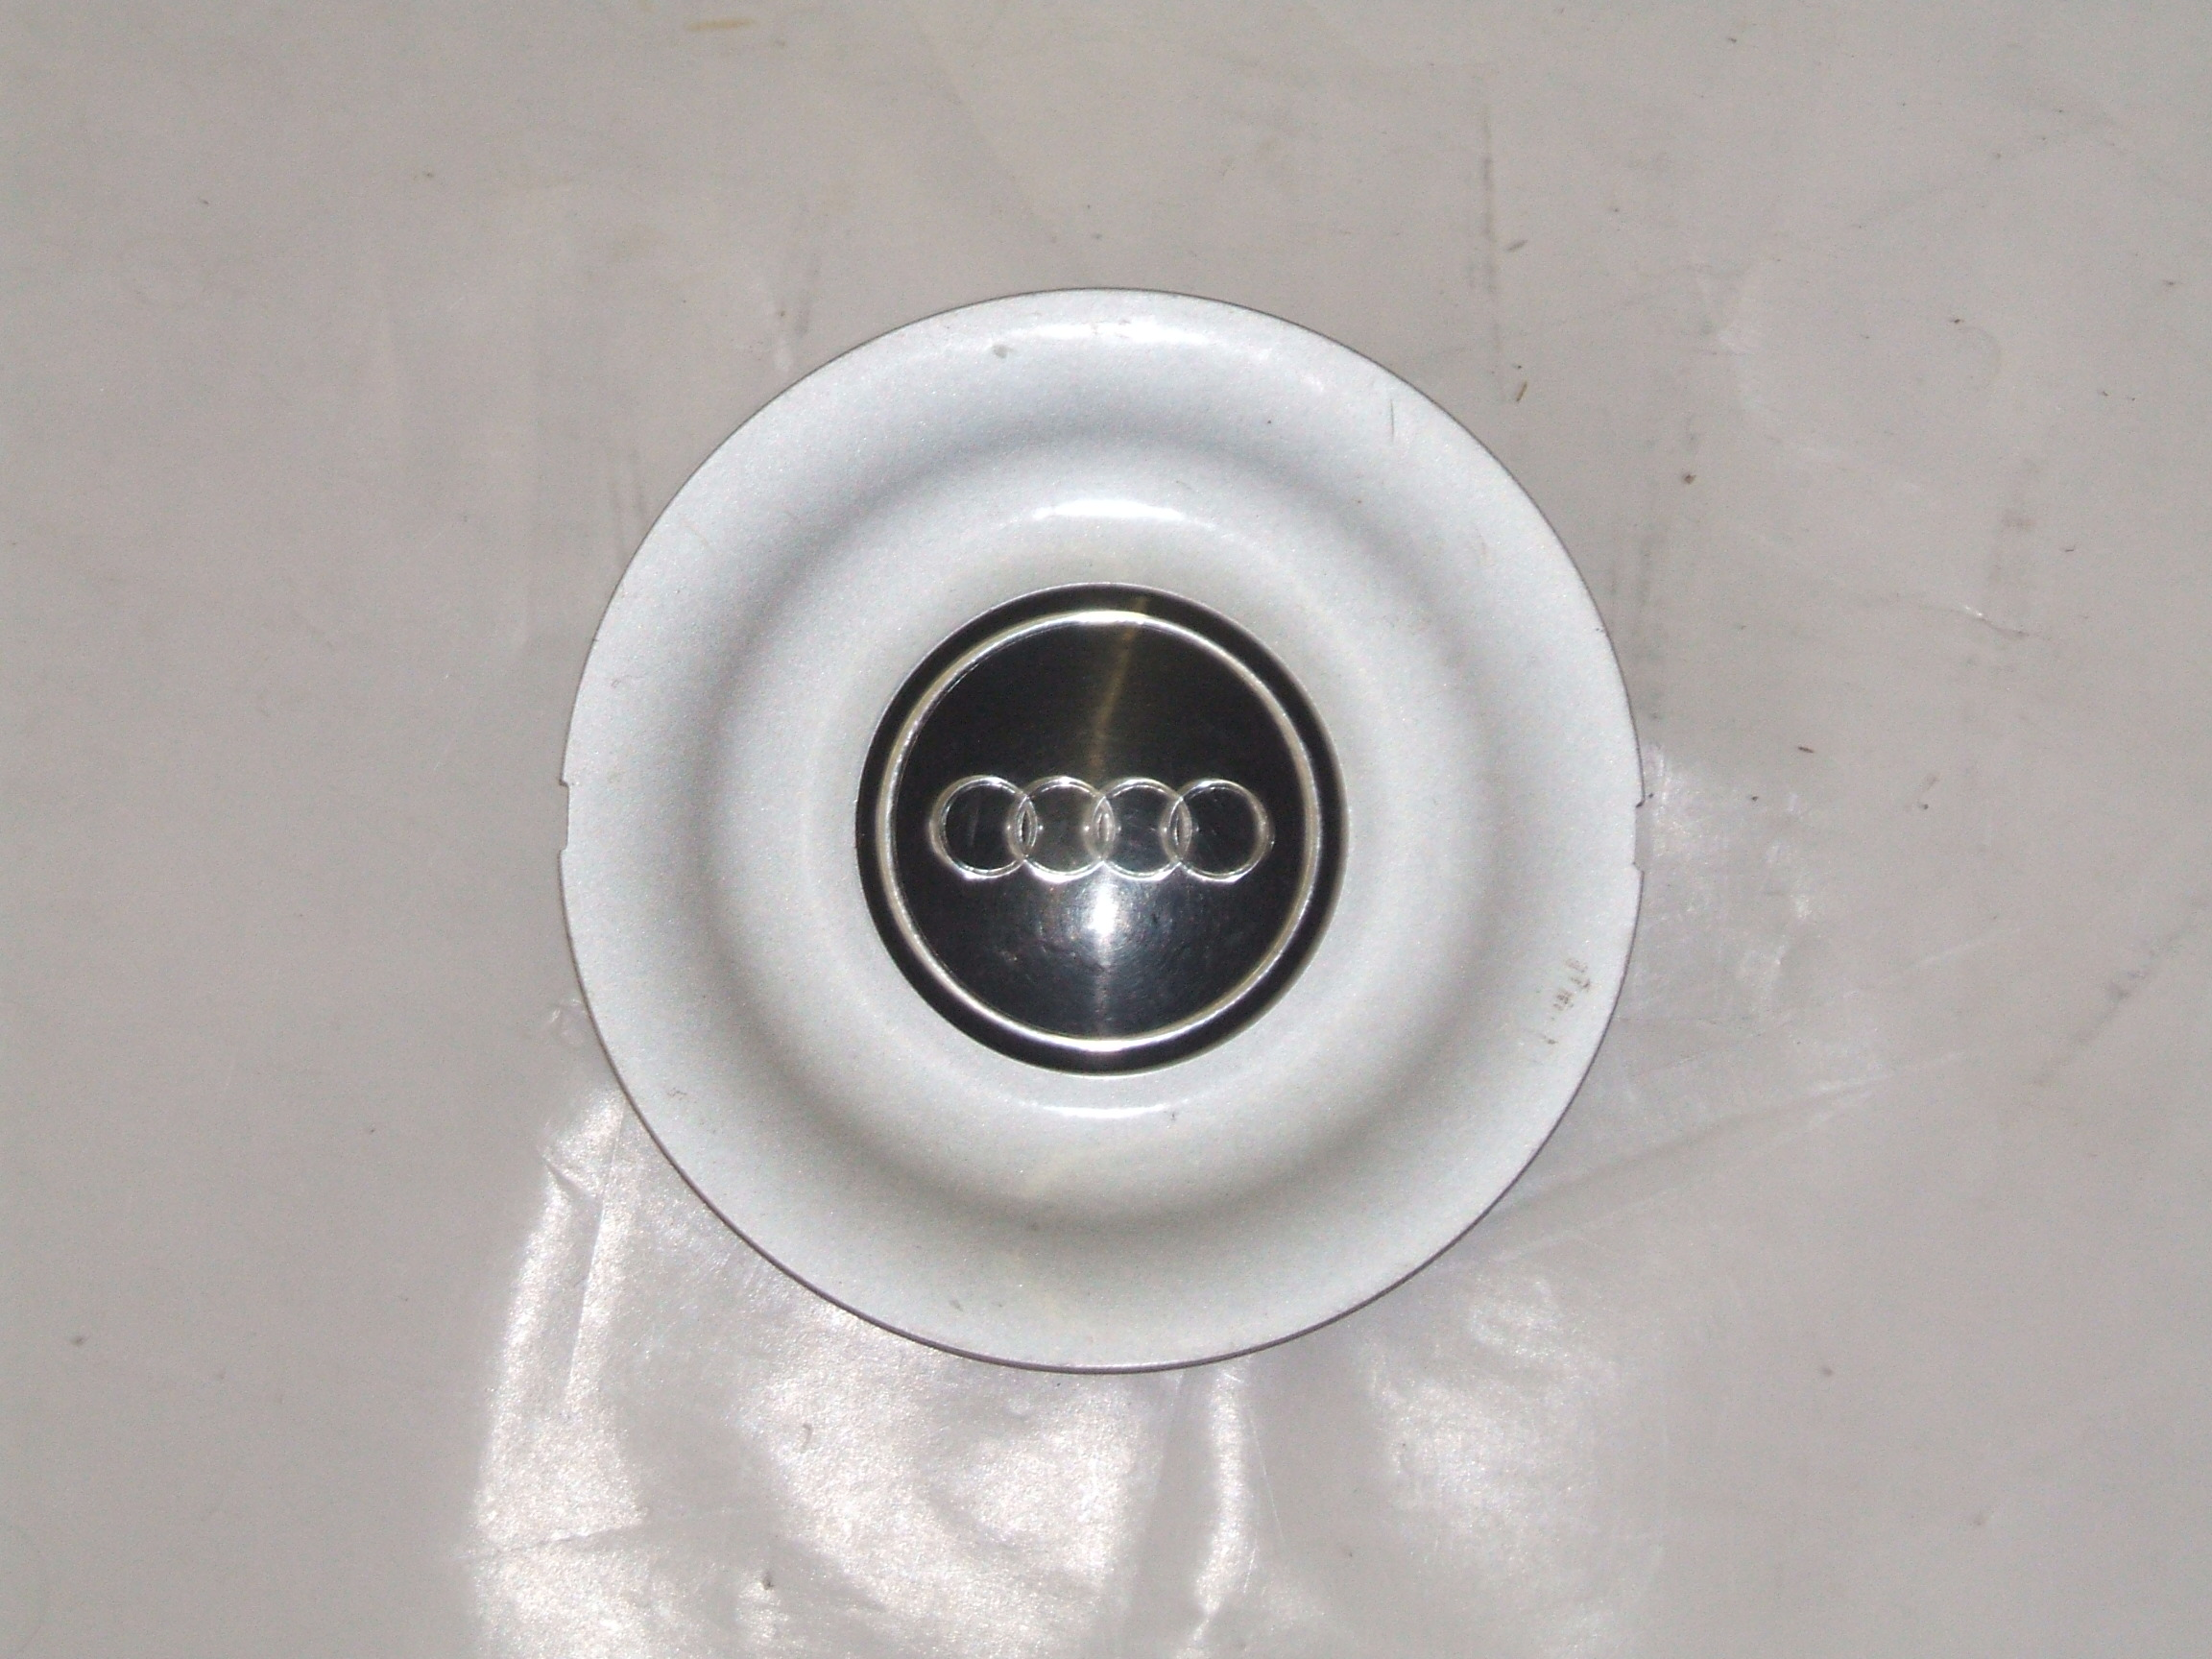 "Audi 100 Cabriolet 93-98 15"" Wheel Center Cap 58692 P/N 4A0601165"